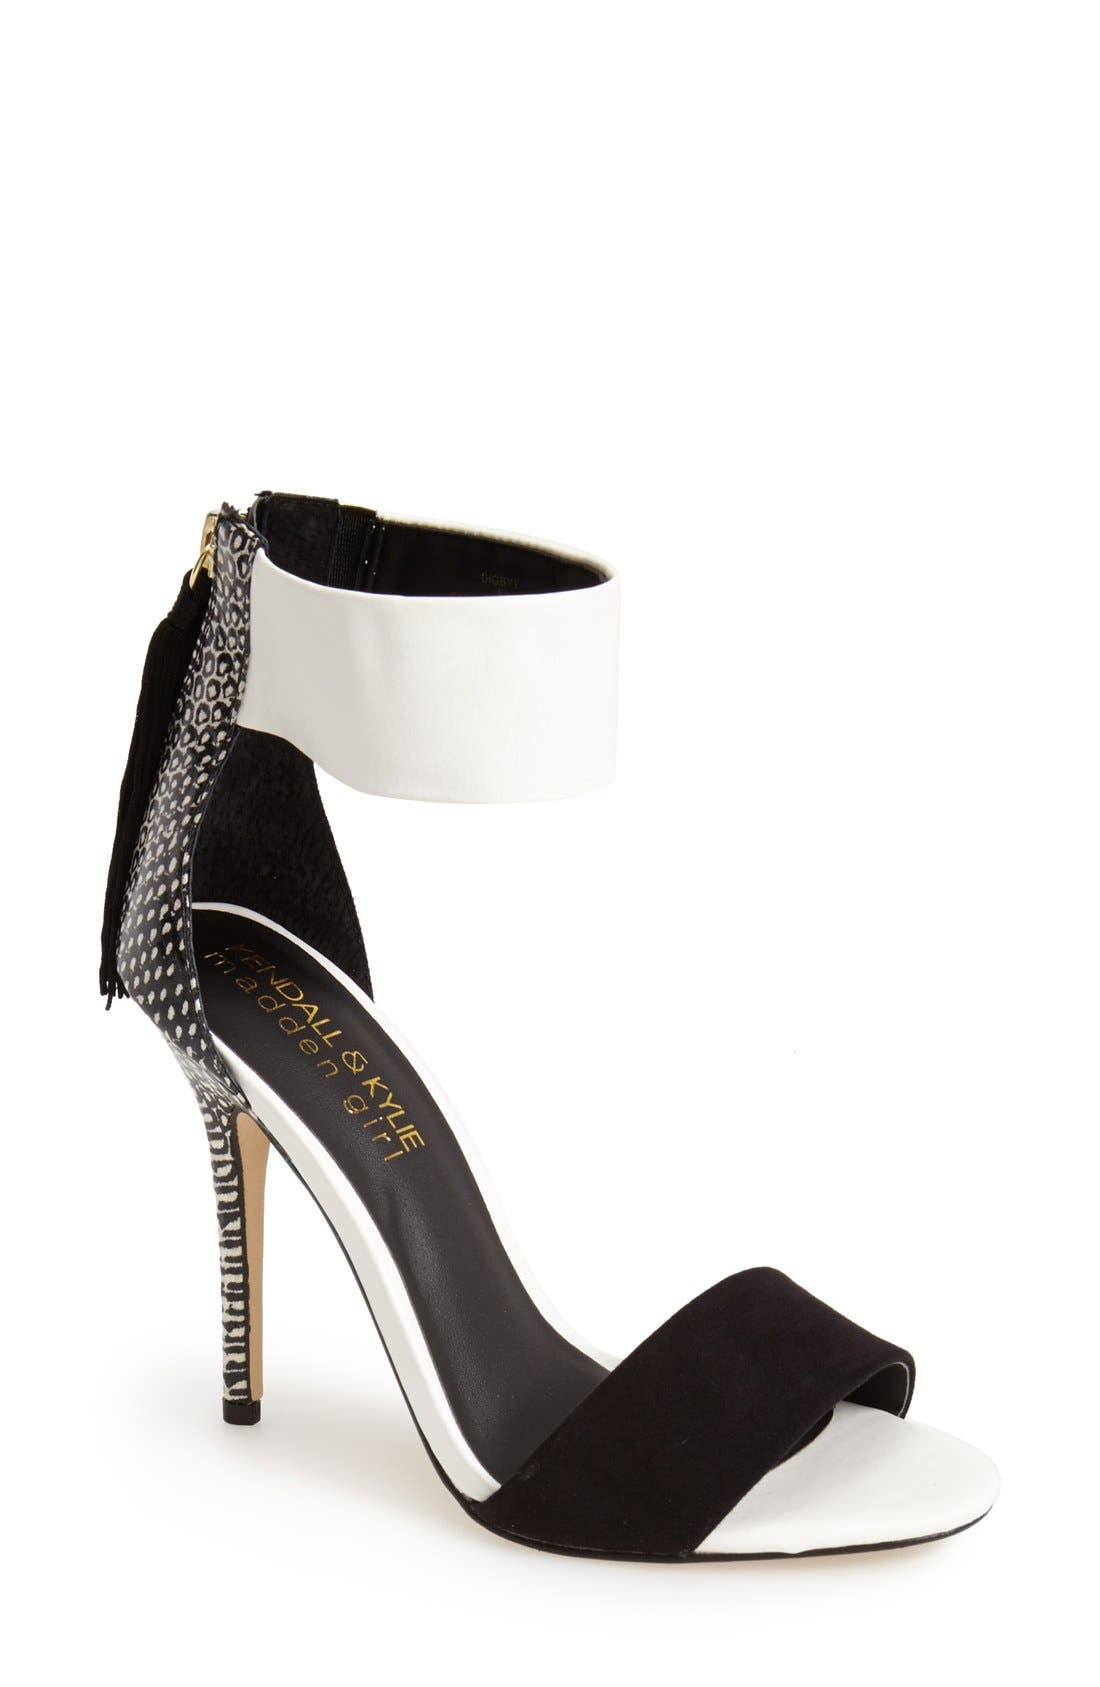 Main Image - KENDALL + KYLIE Madden Girl 'Digbyy' Ankle Cuff Sandal (Women)